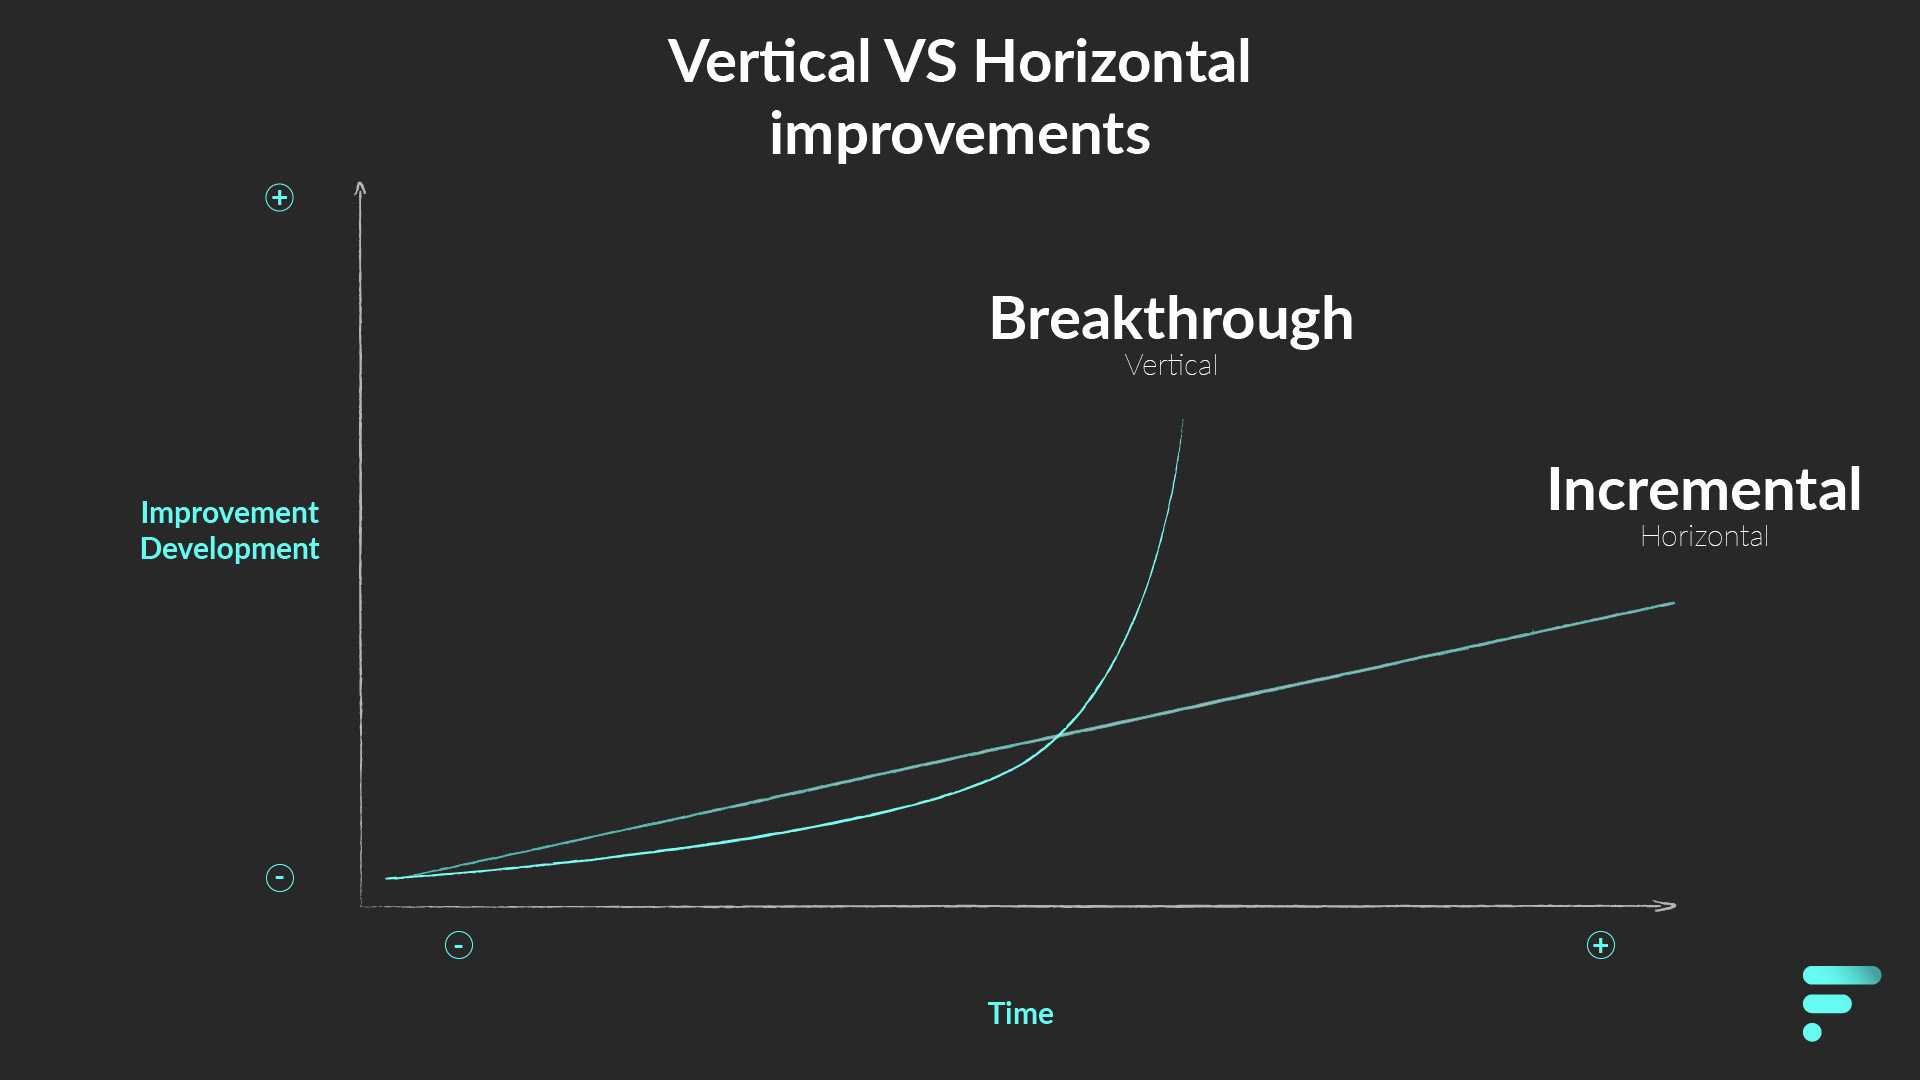 Vertical versus horizontal improvements